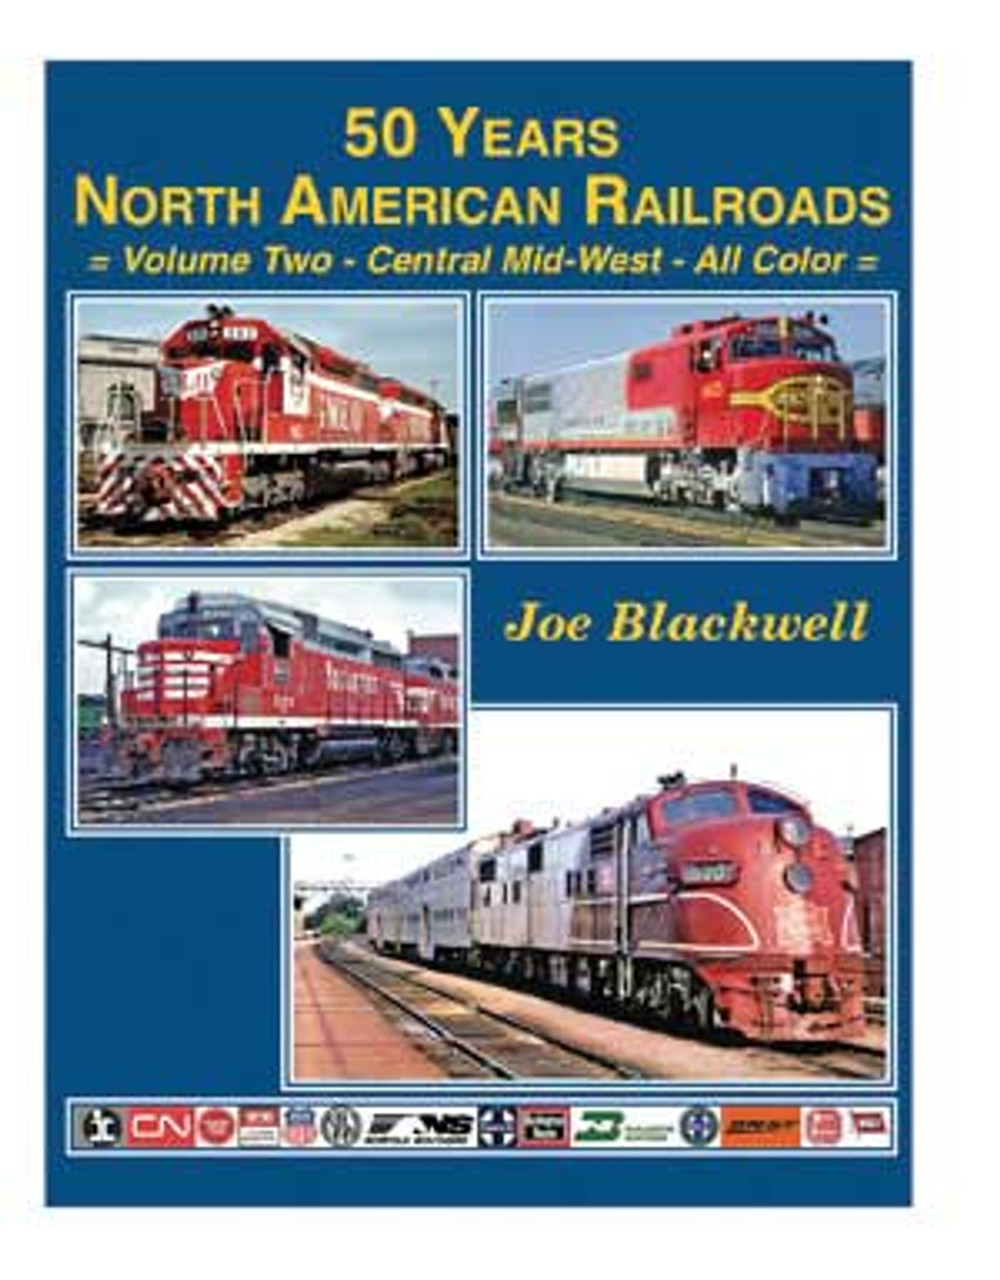 50 Years North American Railroads -- Volume Two - Central Mid-West (Hardcover, 160 Pages)